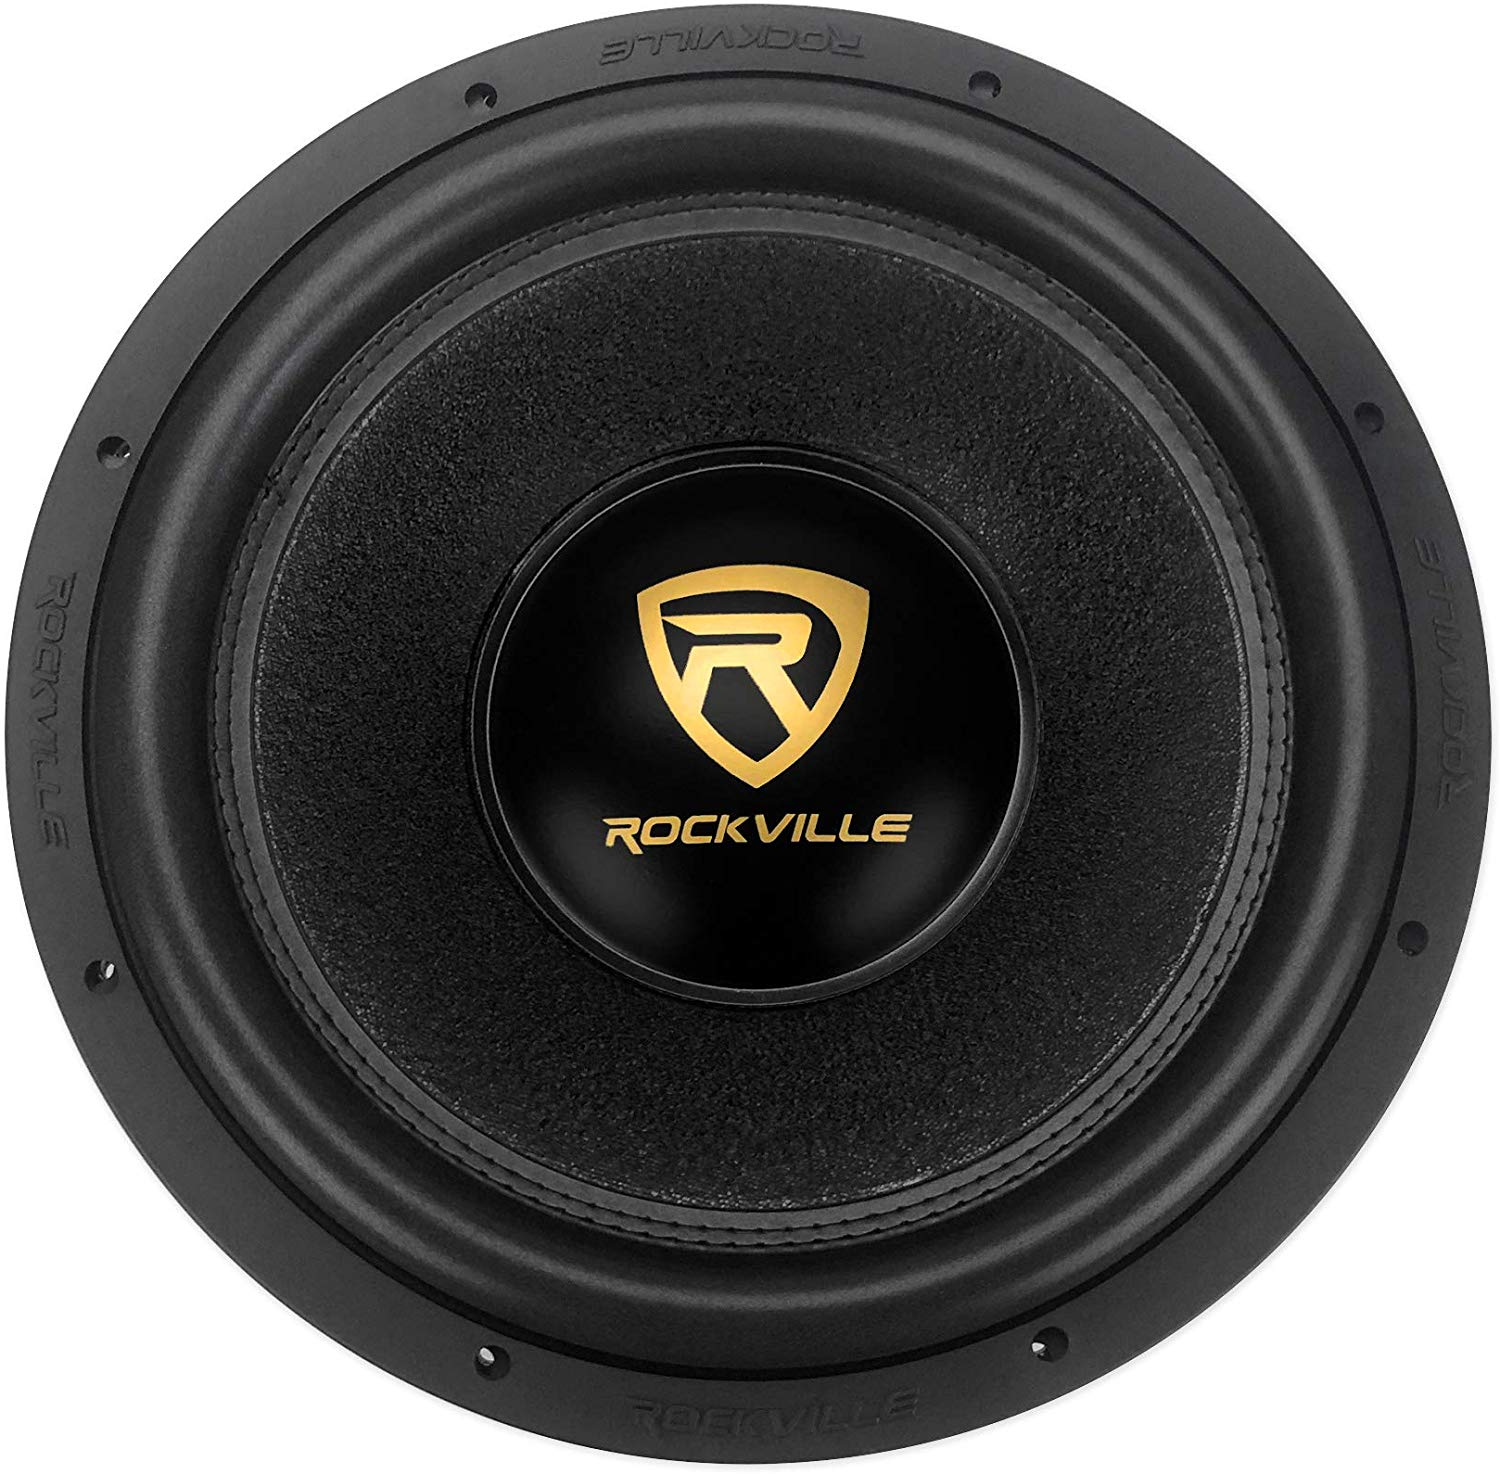 "best 15 inch subwoofer buying guide -  Roll over image to zoom in Rockville W15K9D2 15"" 5000w"